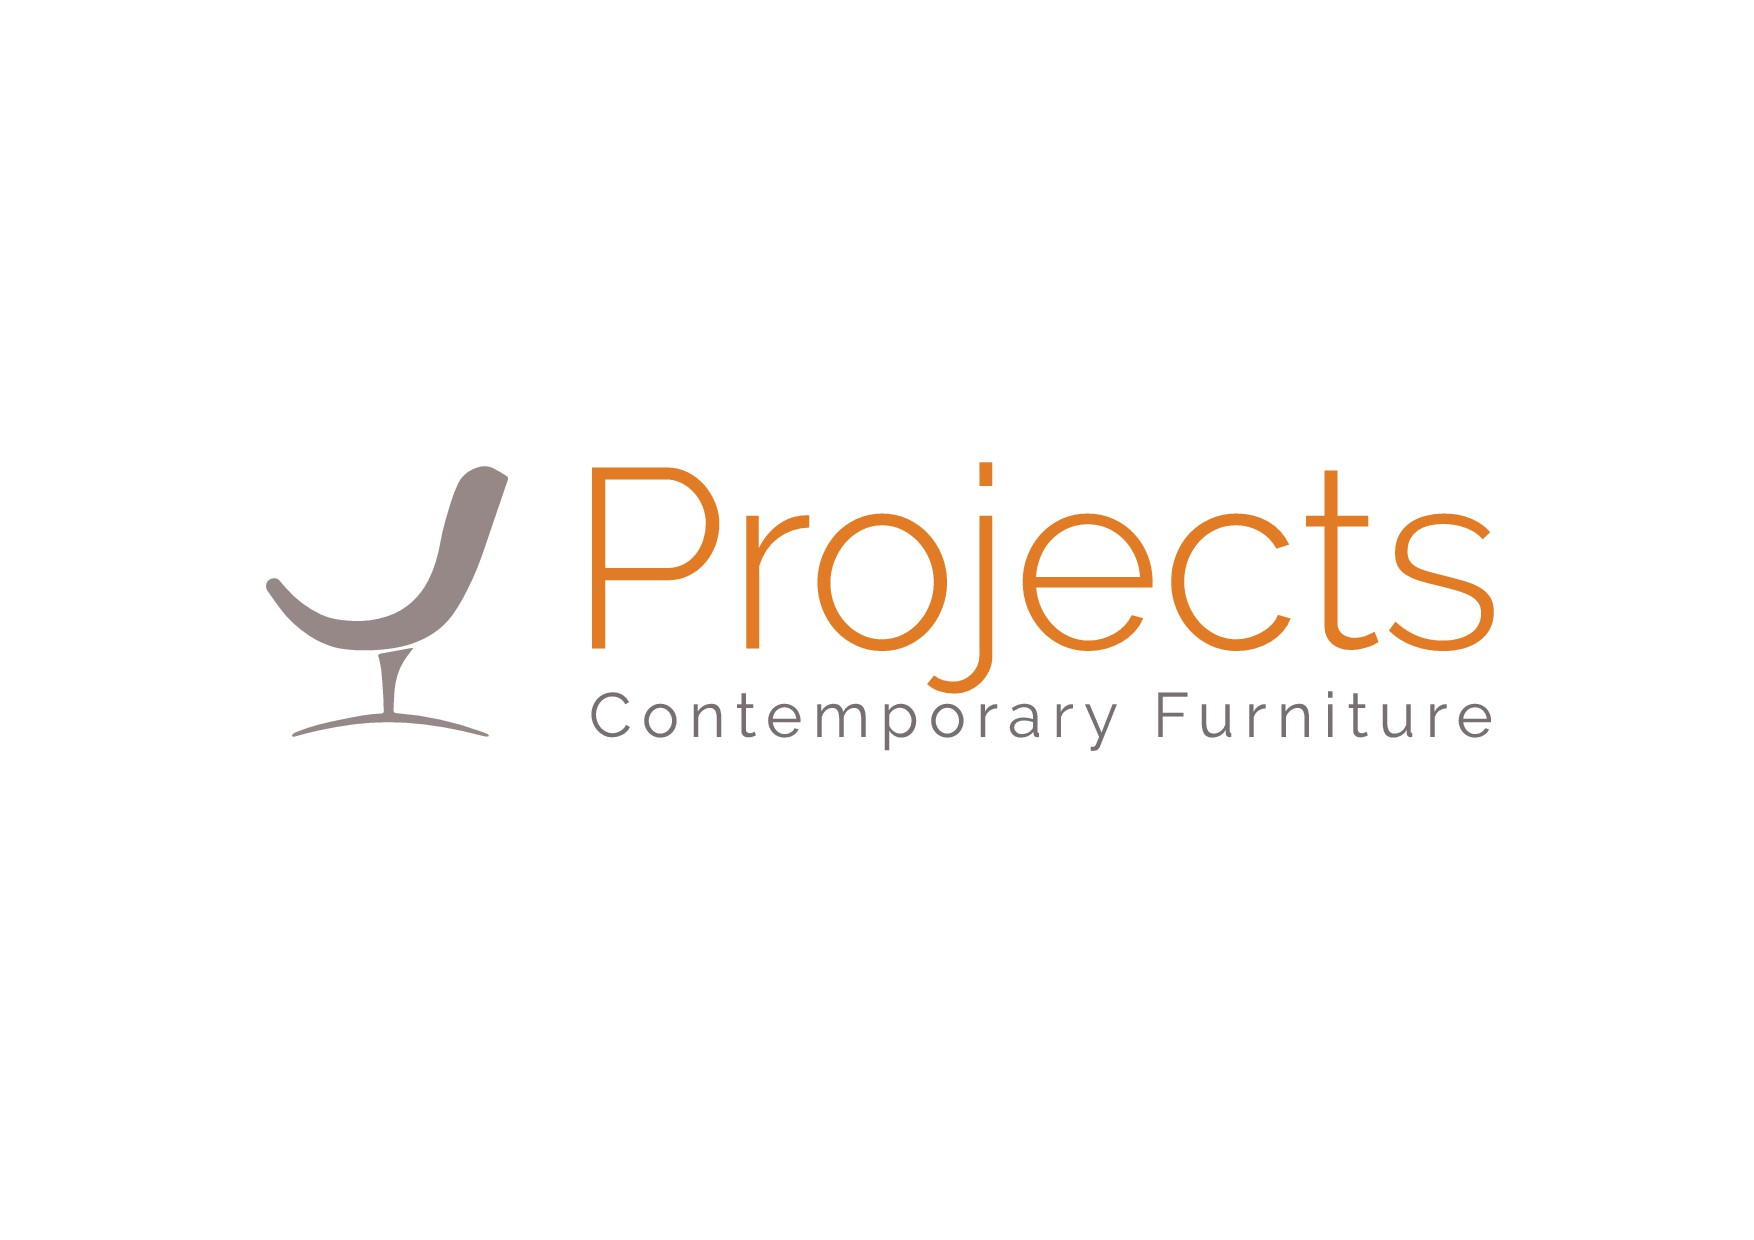 Need a *Modern* + *Sophisticated* logo for Projects Contemporary Furniture